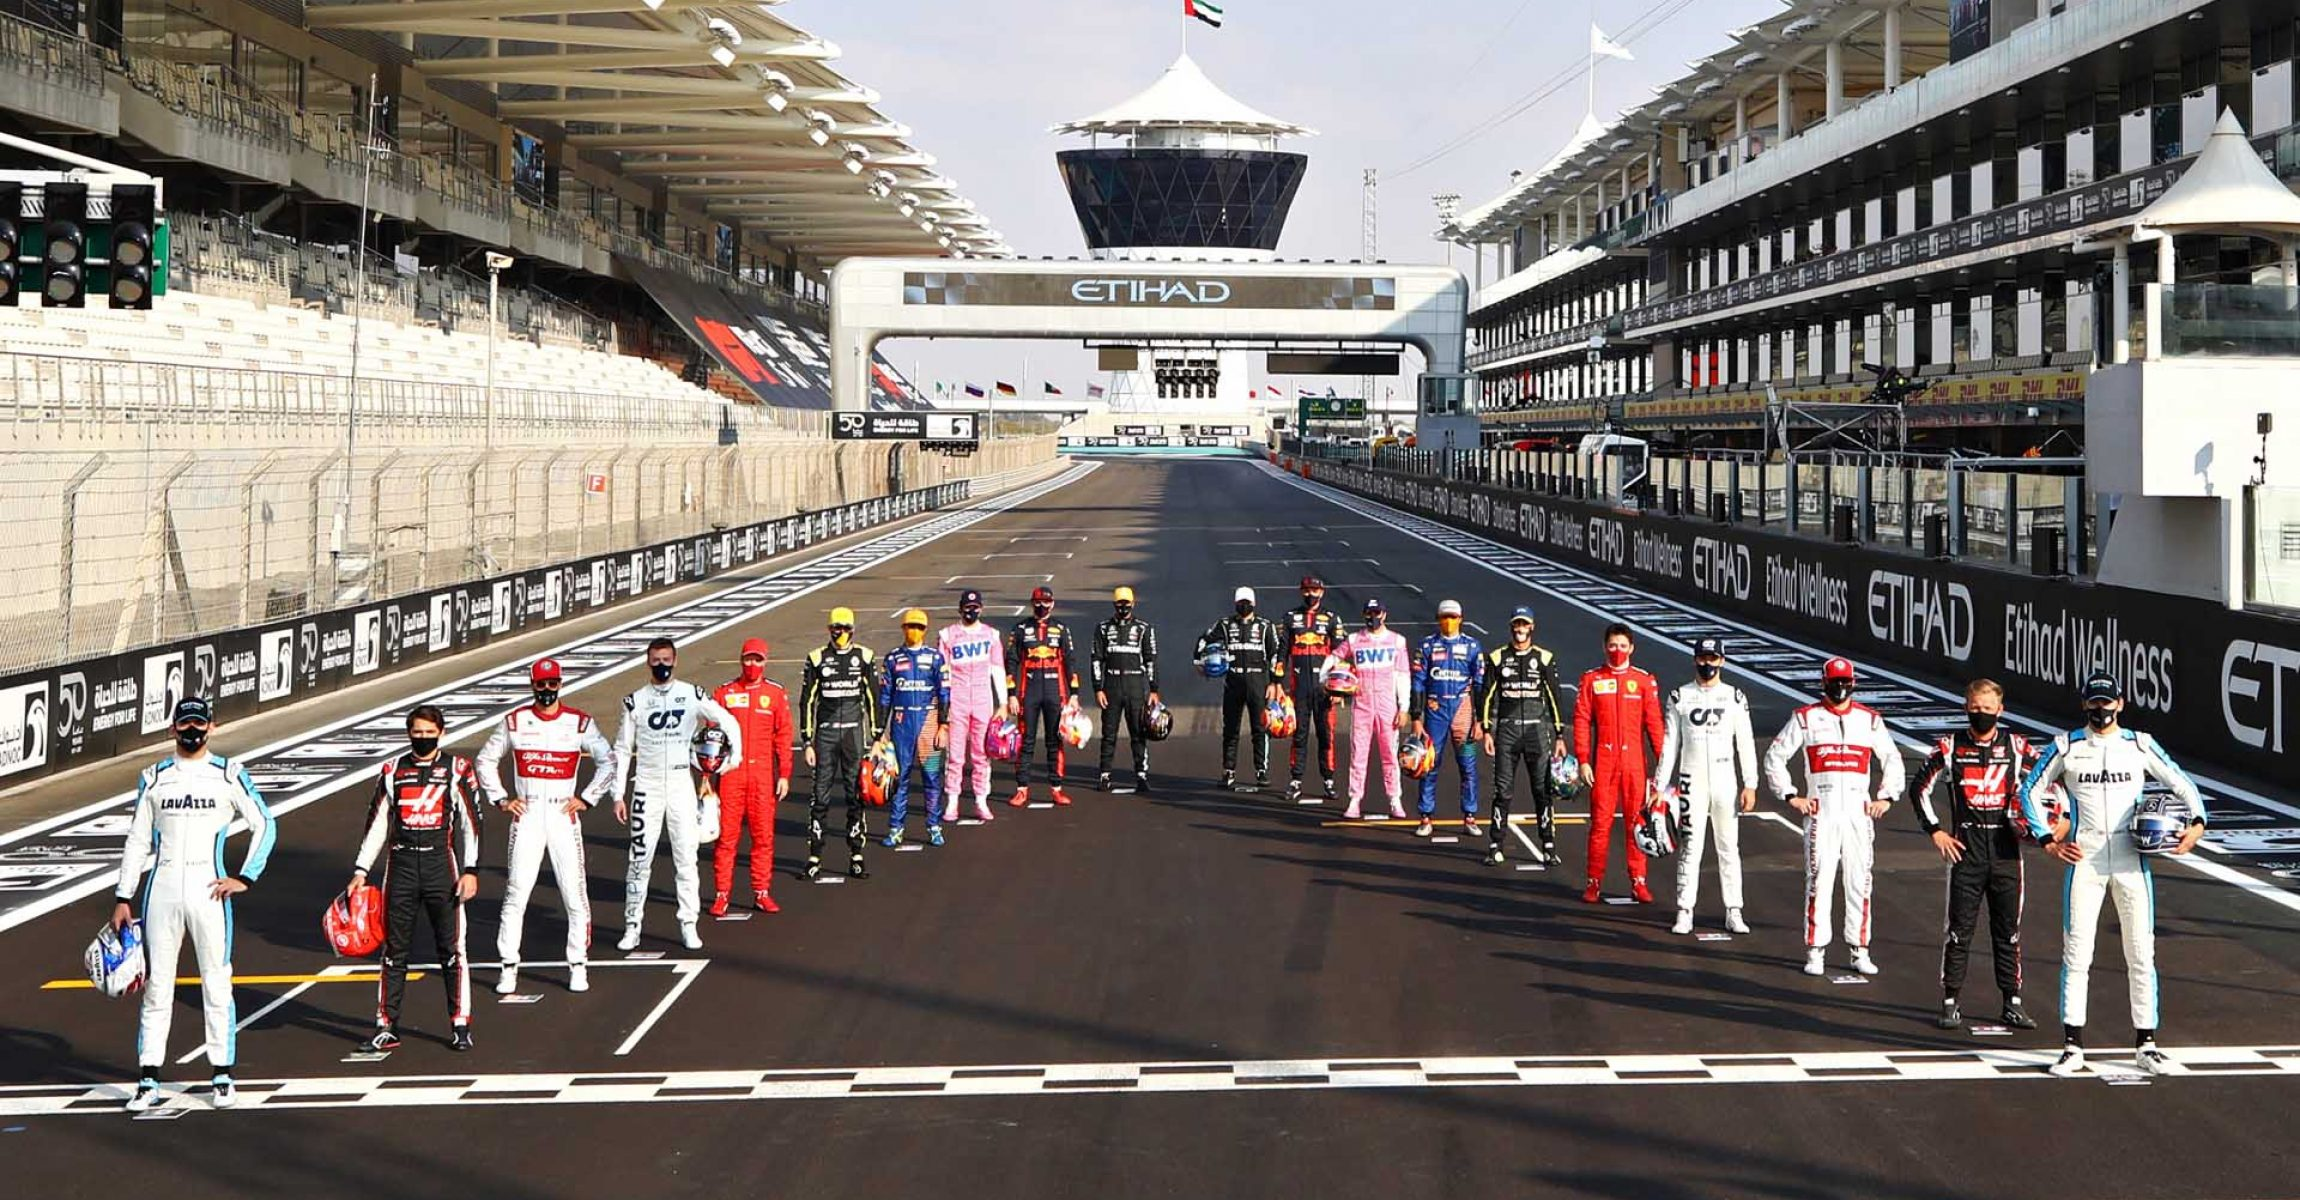 ABU DHABI, UNITED ARAB EMIRATES - DECEMBER 13: The F1 drivers pose for the Class of 2020 photo on the grid prior to the F1 Grand Prix of Abu Dhabi at Yas Marina Circuit on December 13, 2020 in Abu Dhabi, United Arab Emirates. Red Bull Racing (Photo by Bryn Lennon/Getty Images)